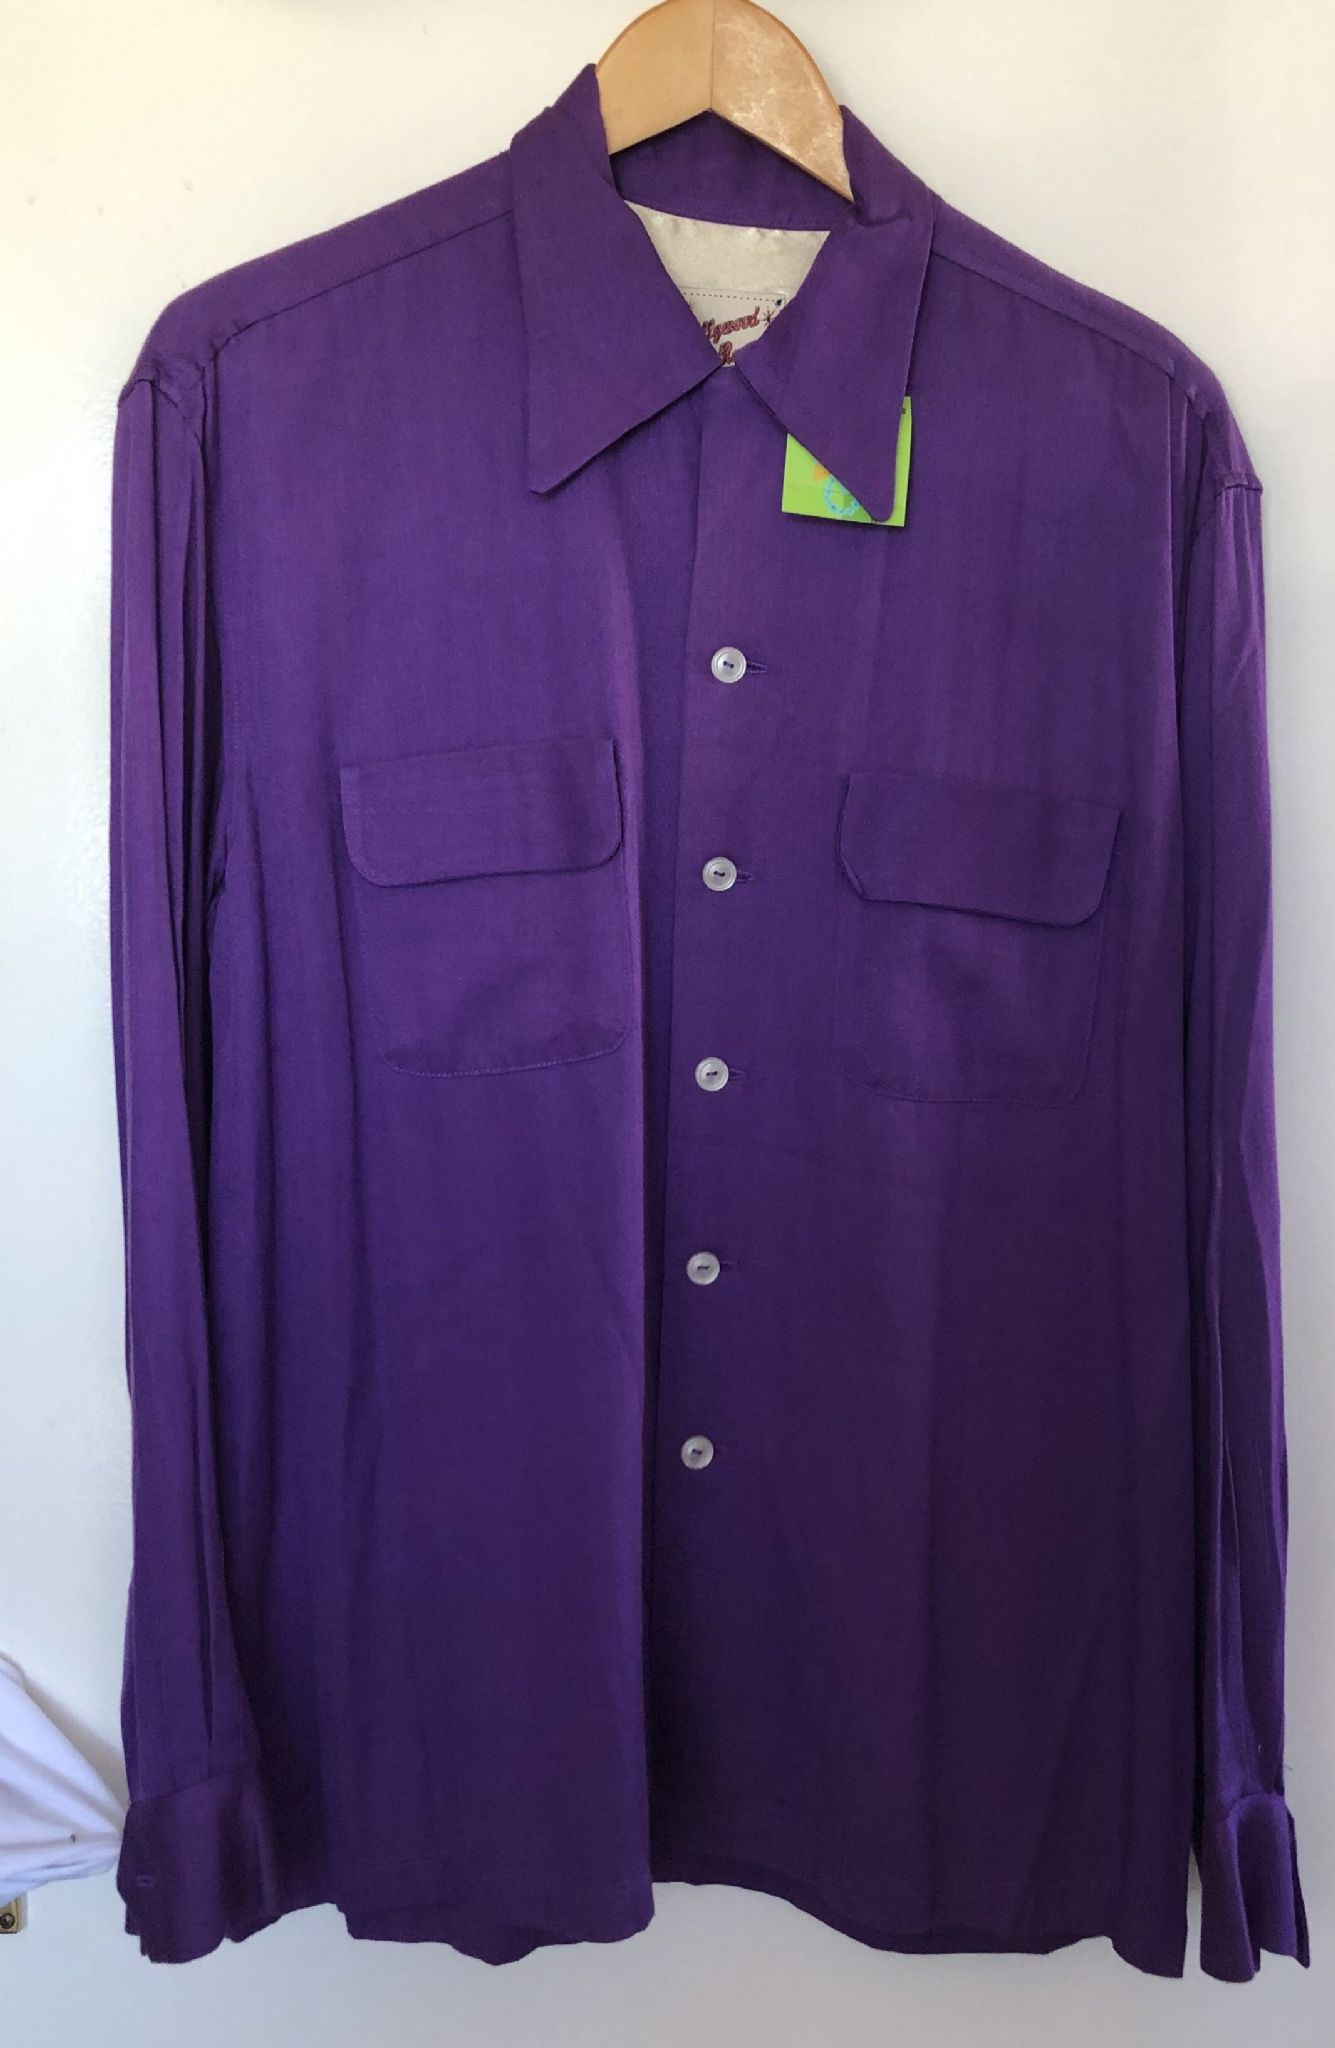 Available in X large 1950s vintage reproduction Hollywood Rogue purple rayon gabardine shirt